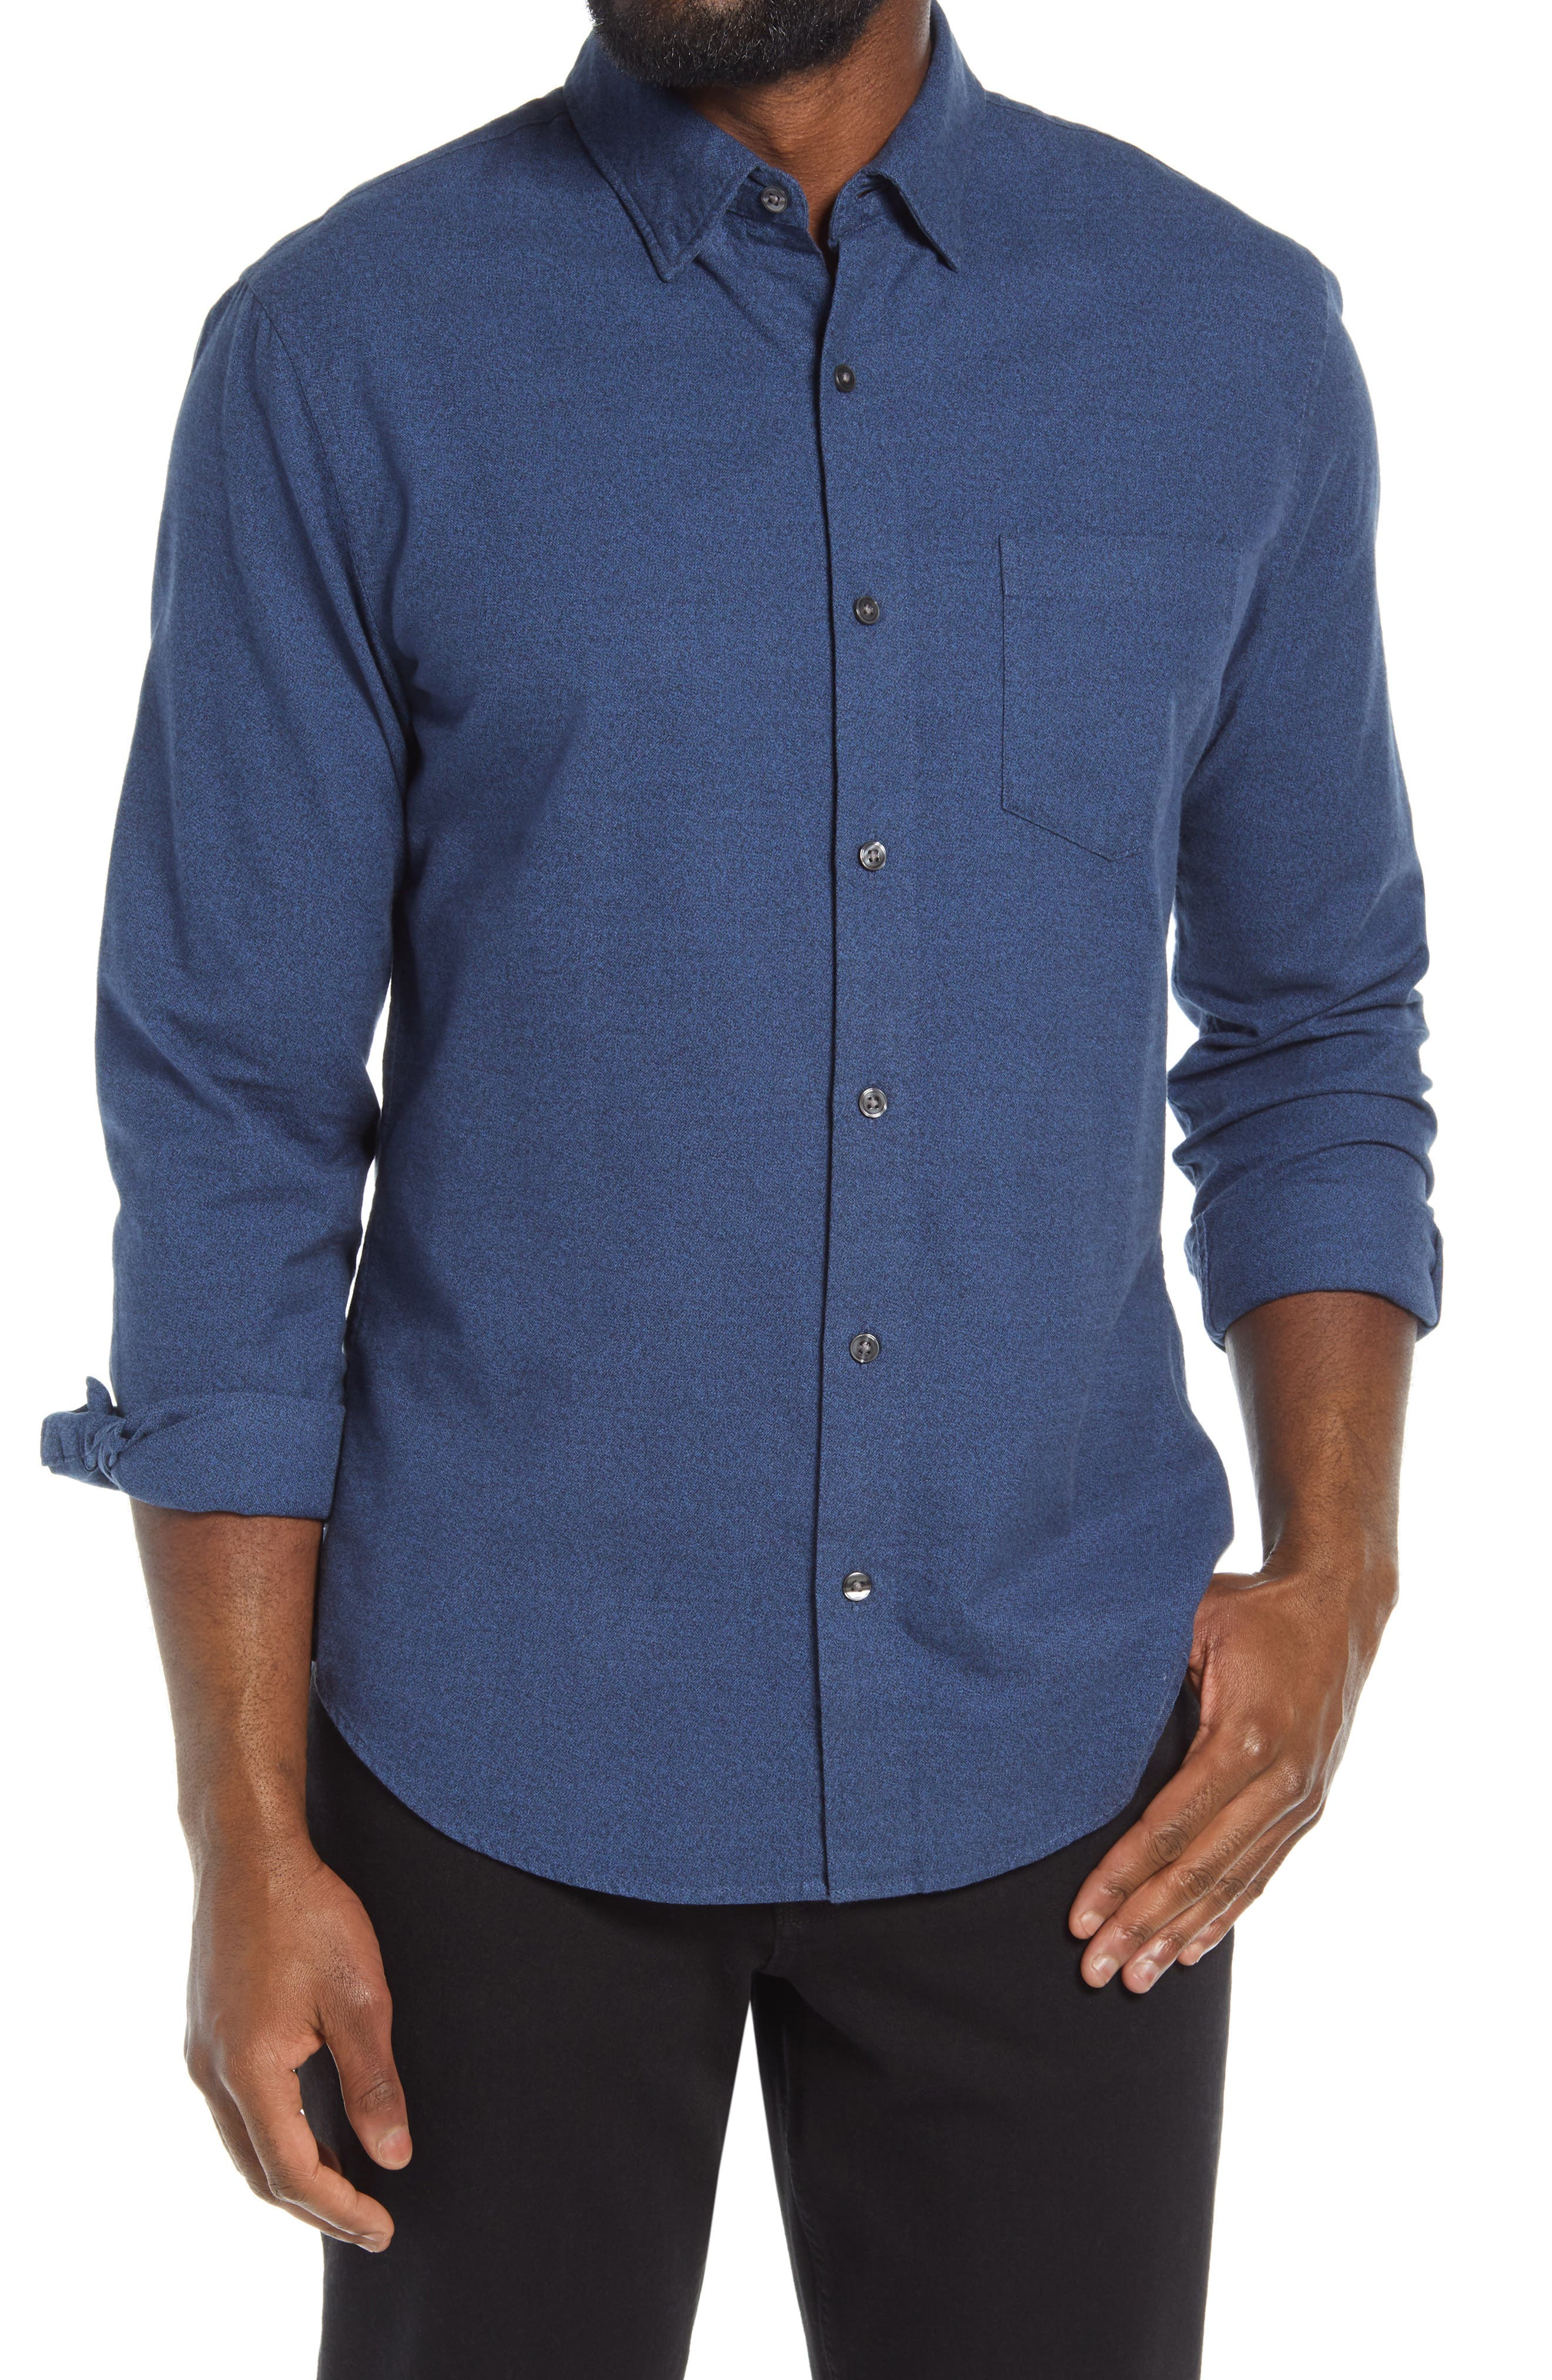 Brushed cotton with denim-like color variations gives a soft and casual look to this slim-fitting shirt. Style Name: Bonobos Slim Fit Button-Up Shirt. Style Number: 6003120. Available in stores.